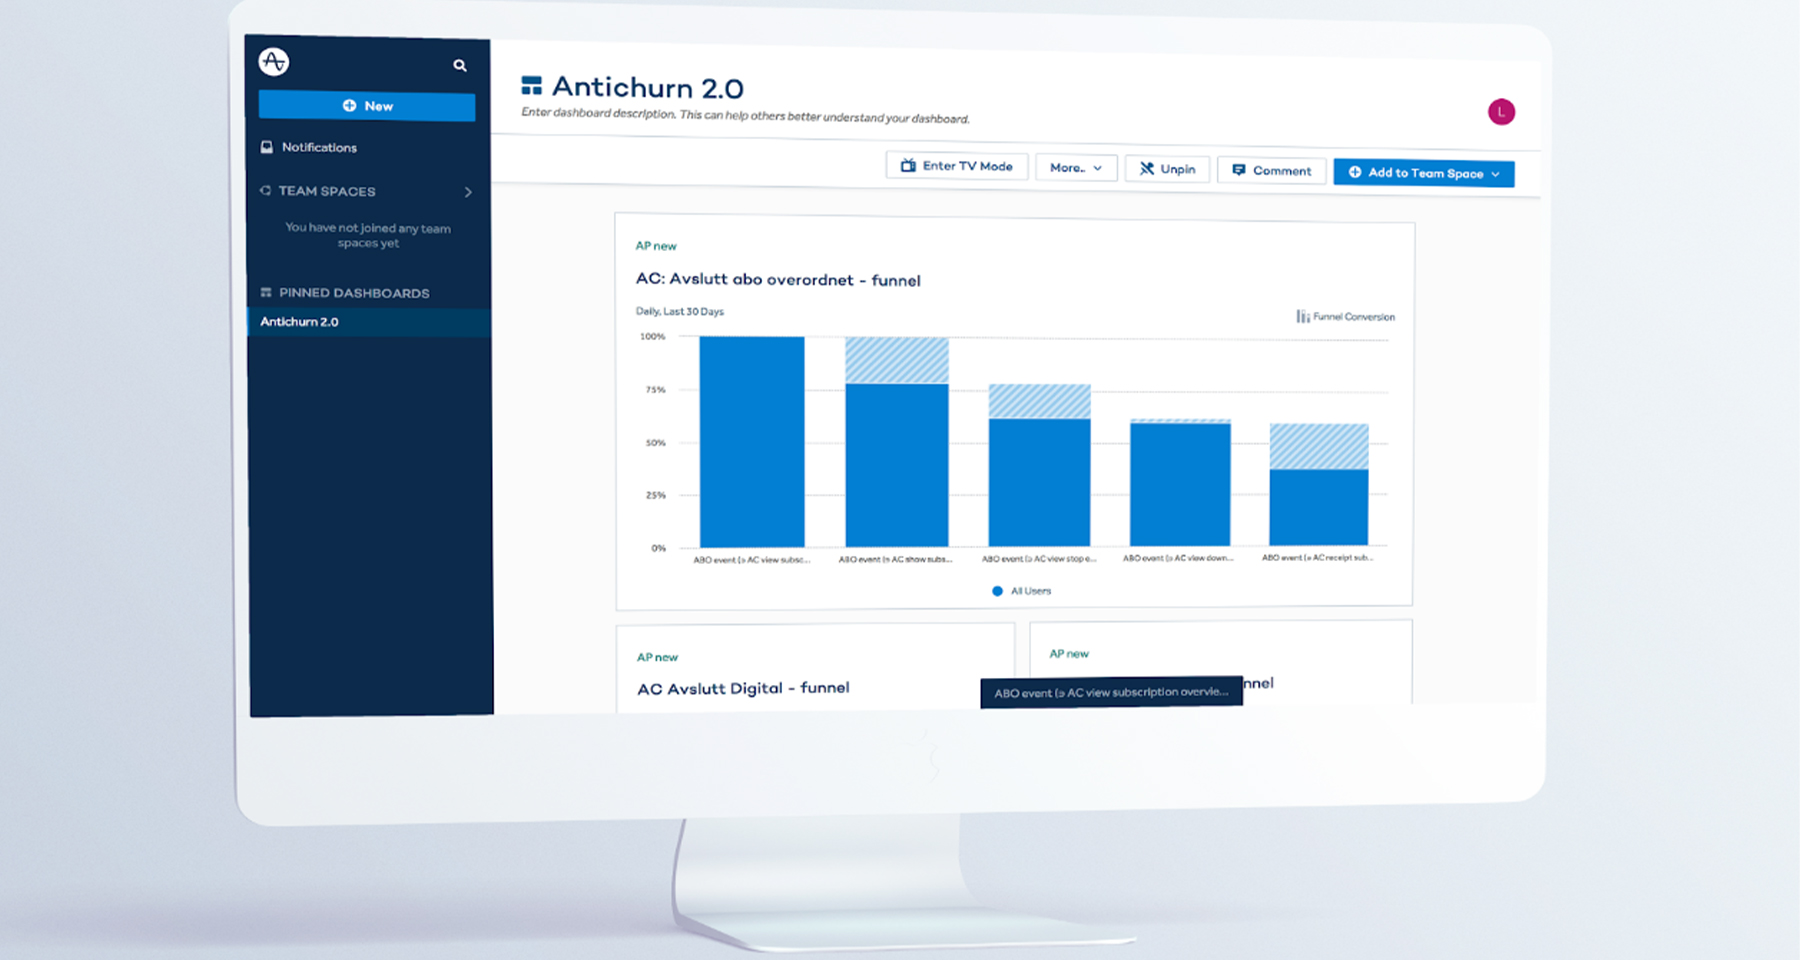 Schibsted reduces churn by helping readers visualise a subscription's value proposition